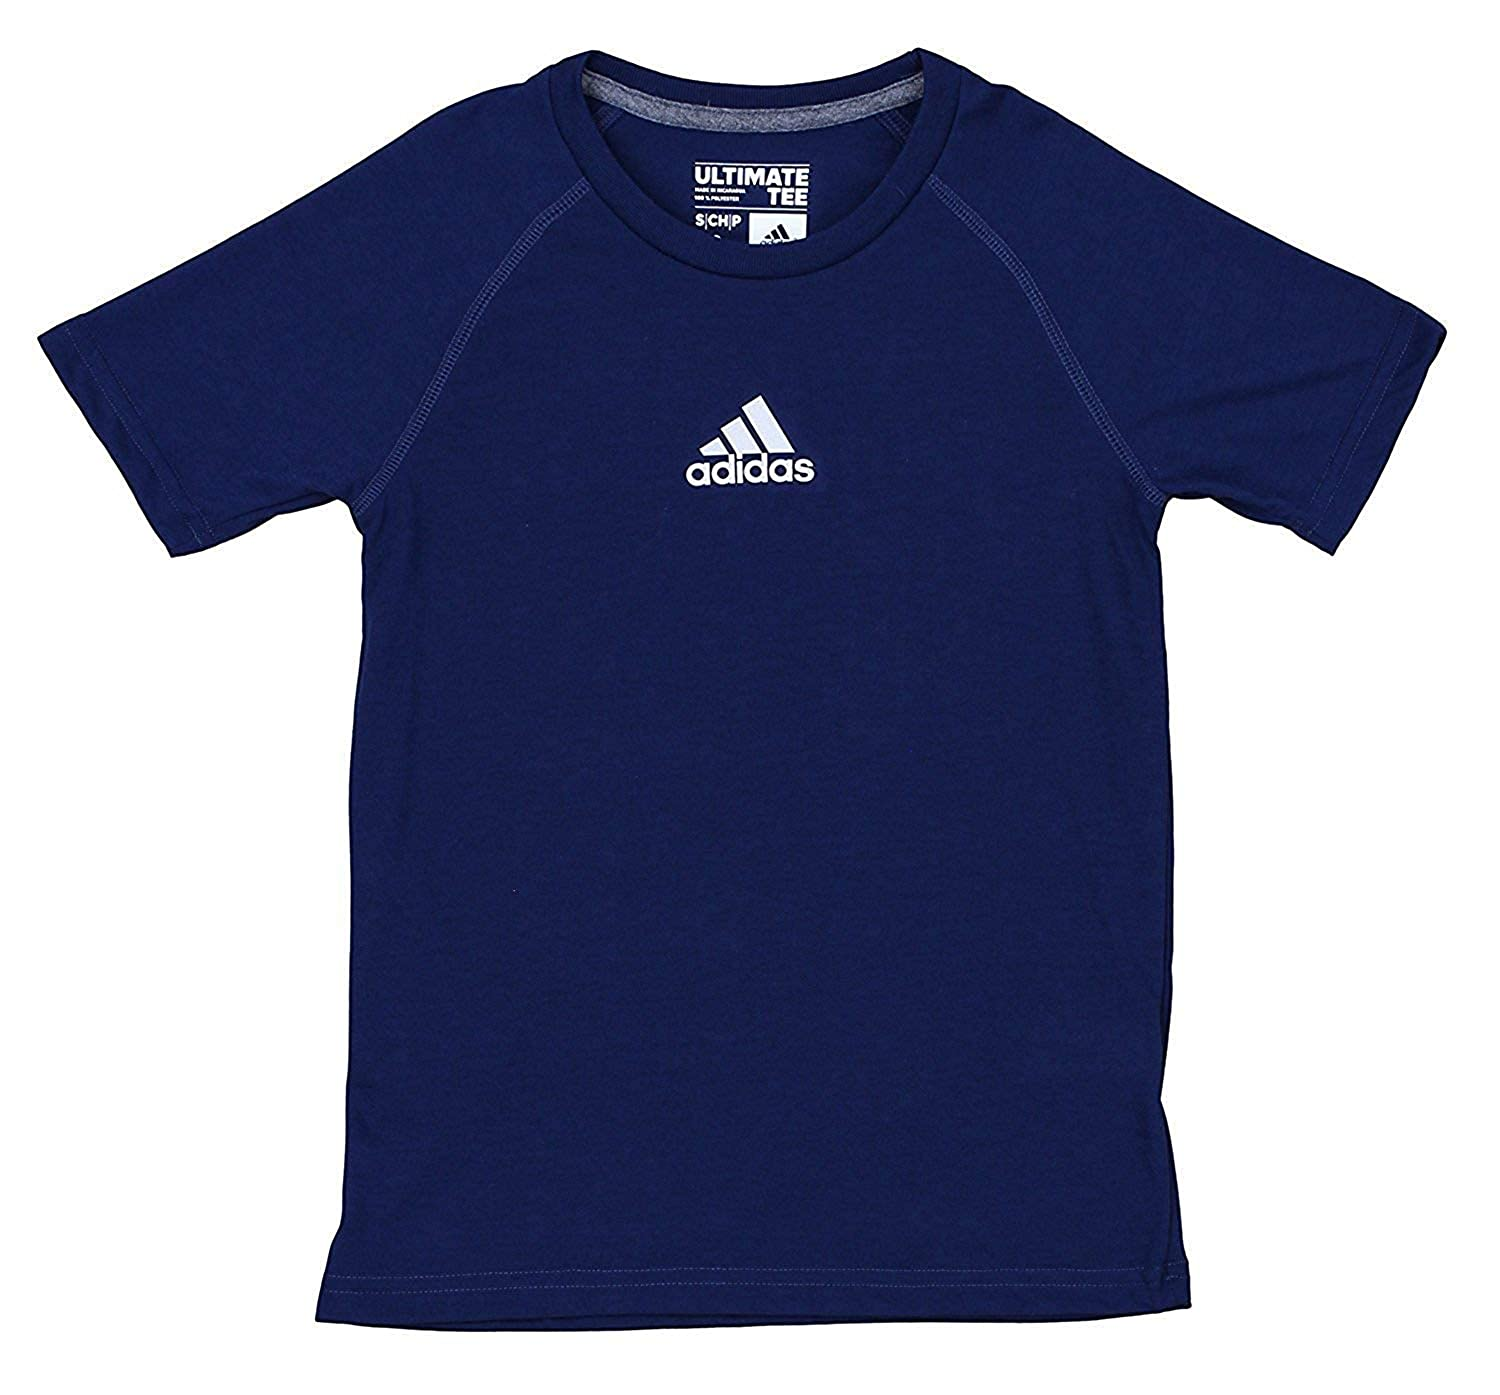 adidas Boys' Climalite Short Sleeve Graphic Tee, Color Options